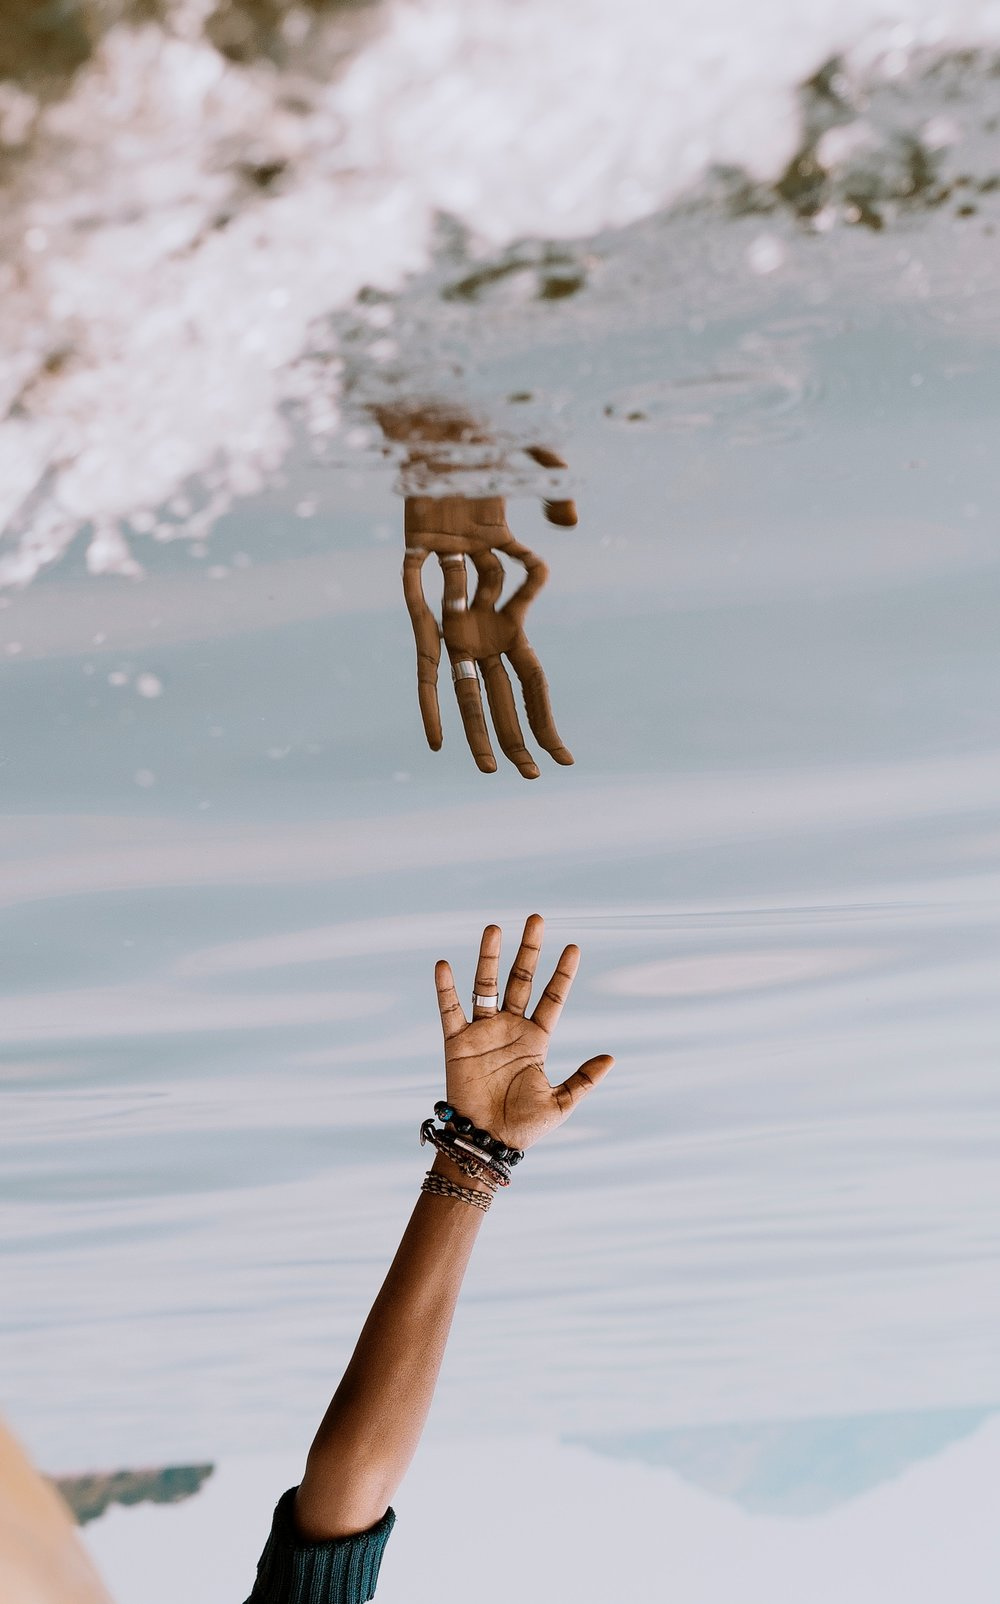 Hand Reaching to Water (Baptism Image)